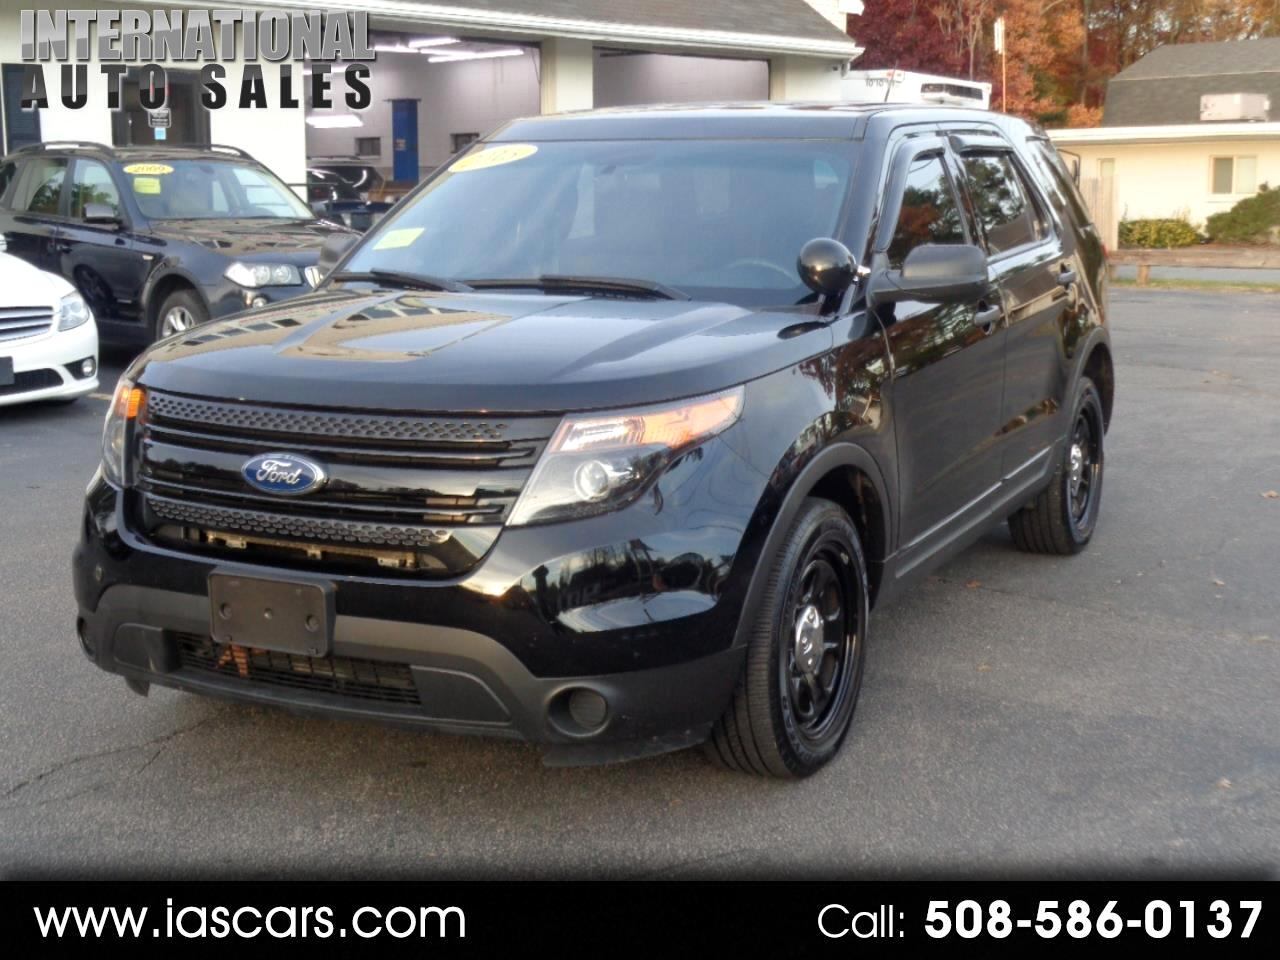 2015 Ford Explorer Police AWD